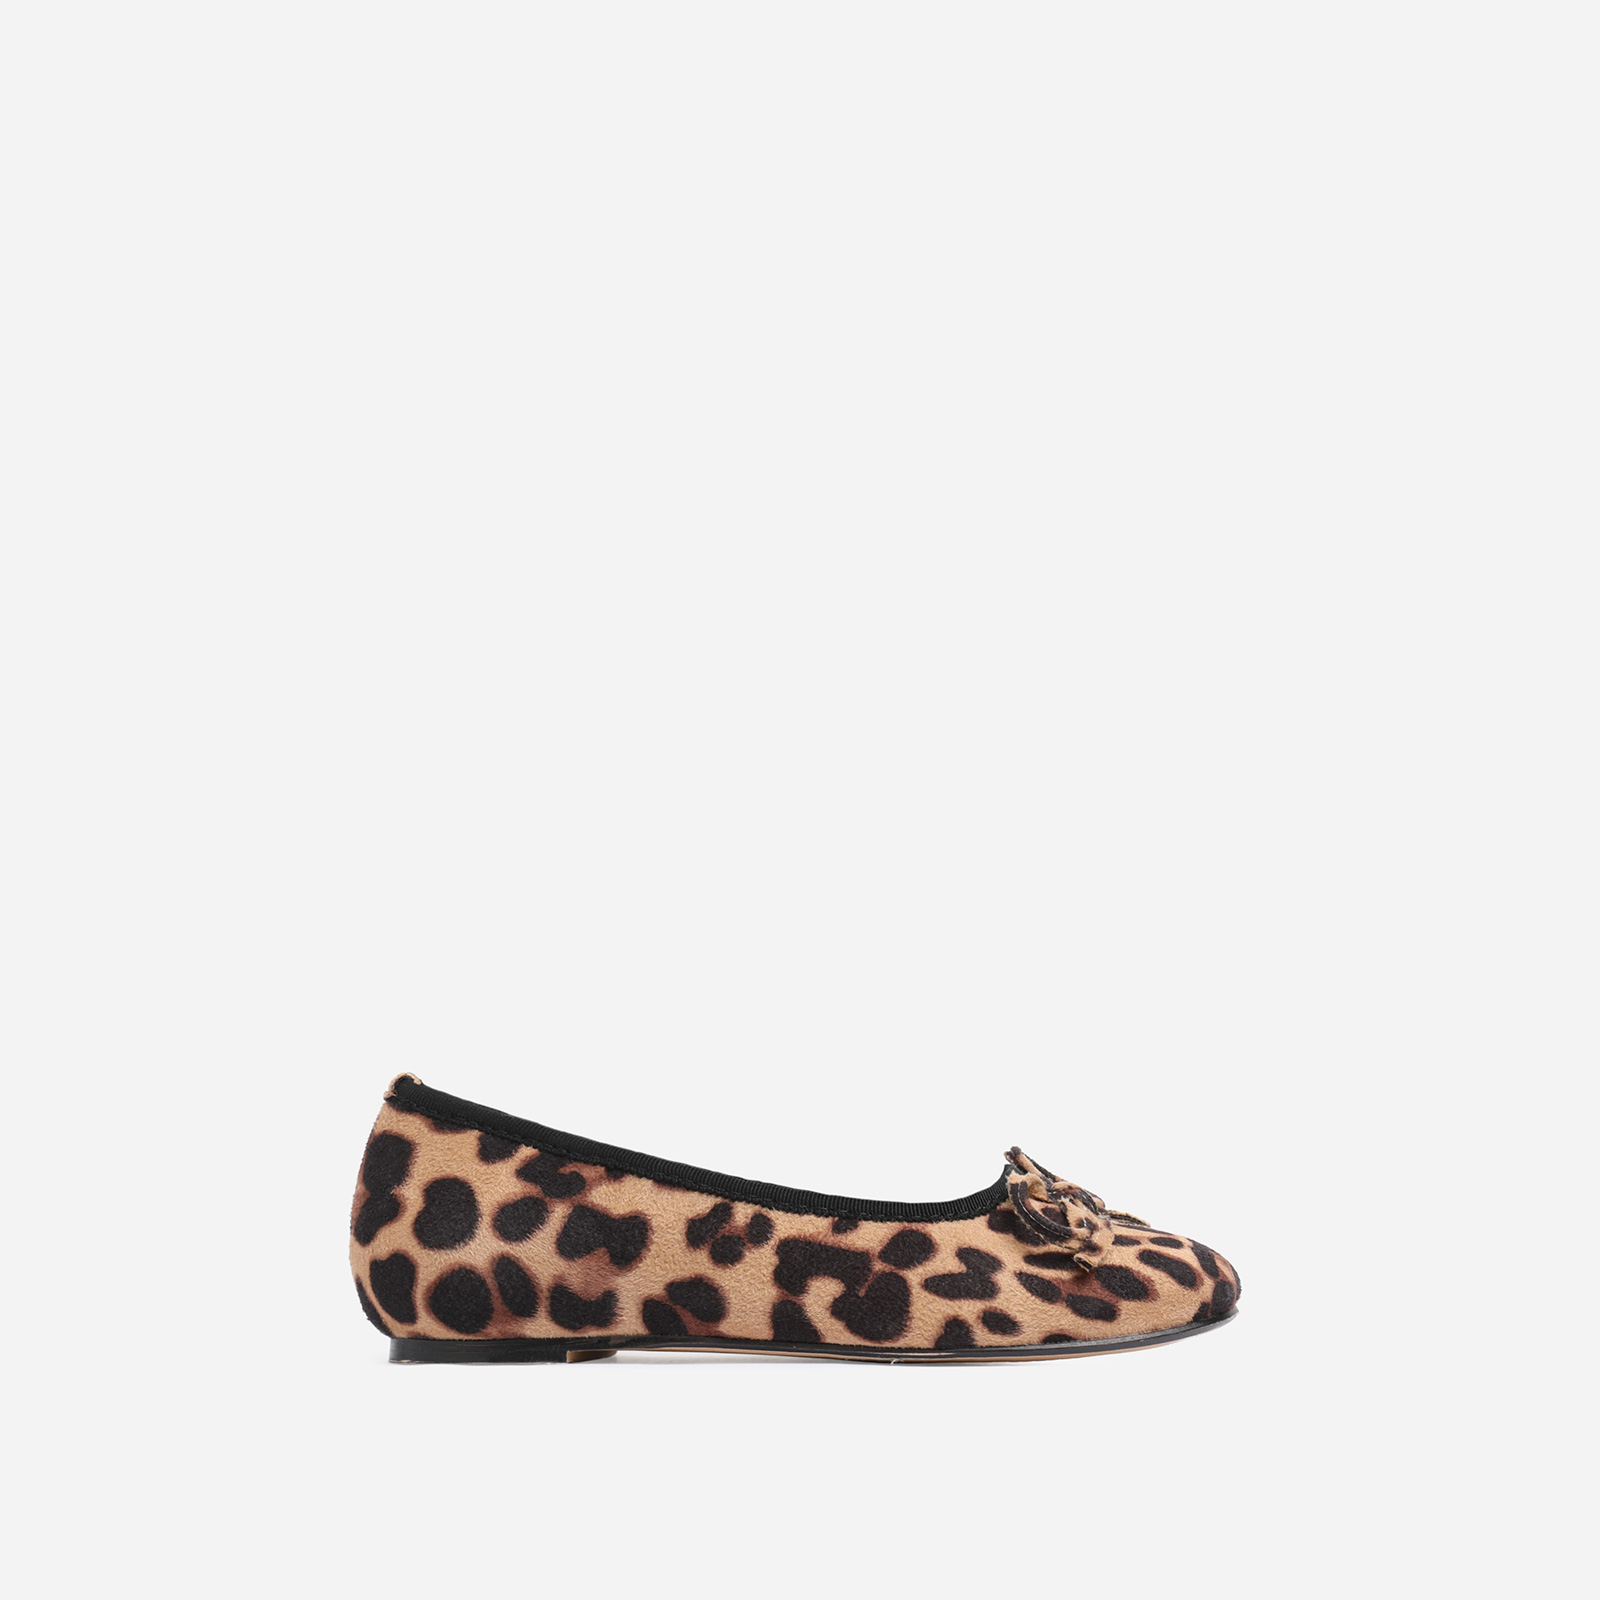 Ballerina Girl's Bow Detail Flat Ballet Pump In Tan Leopard Print Faux Suede